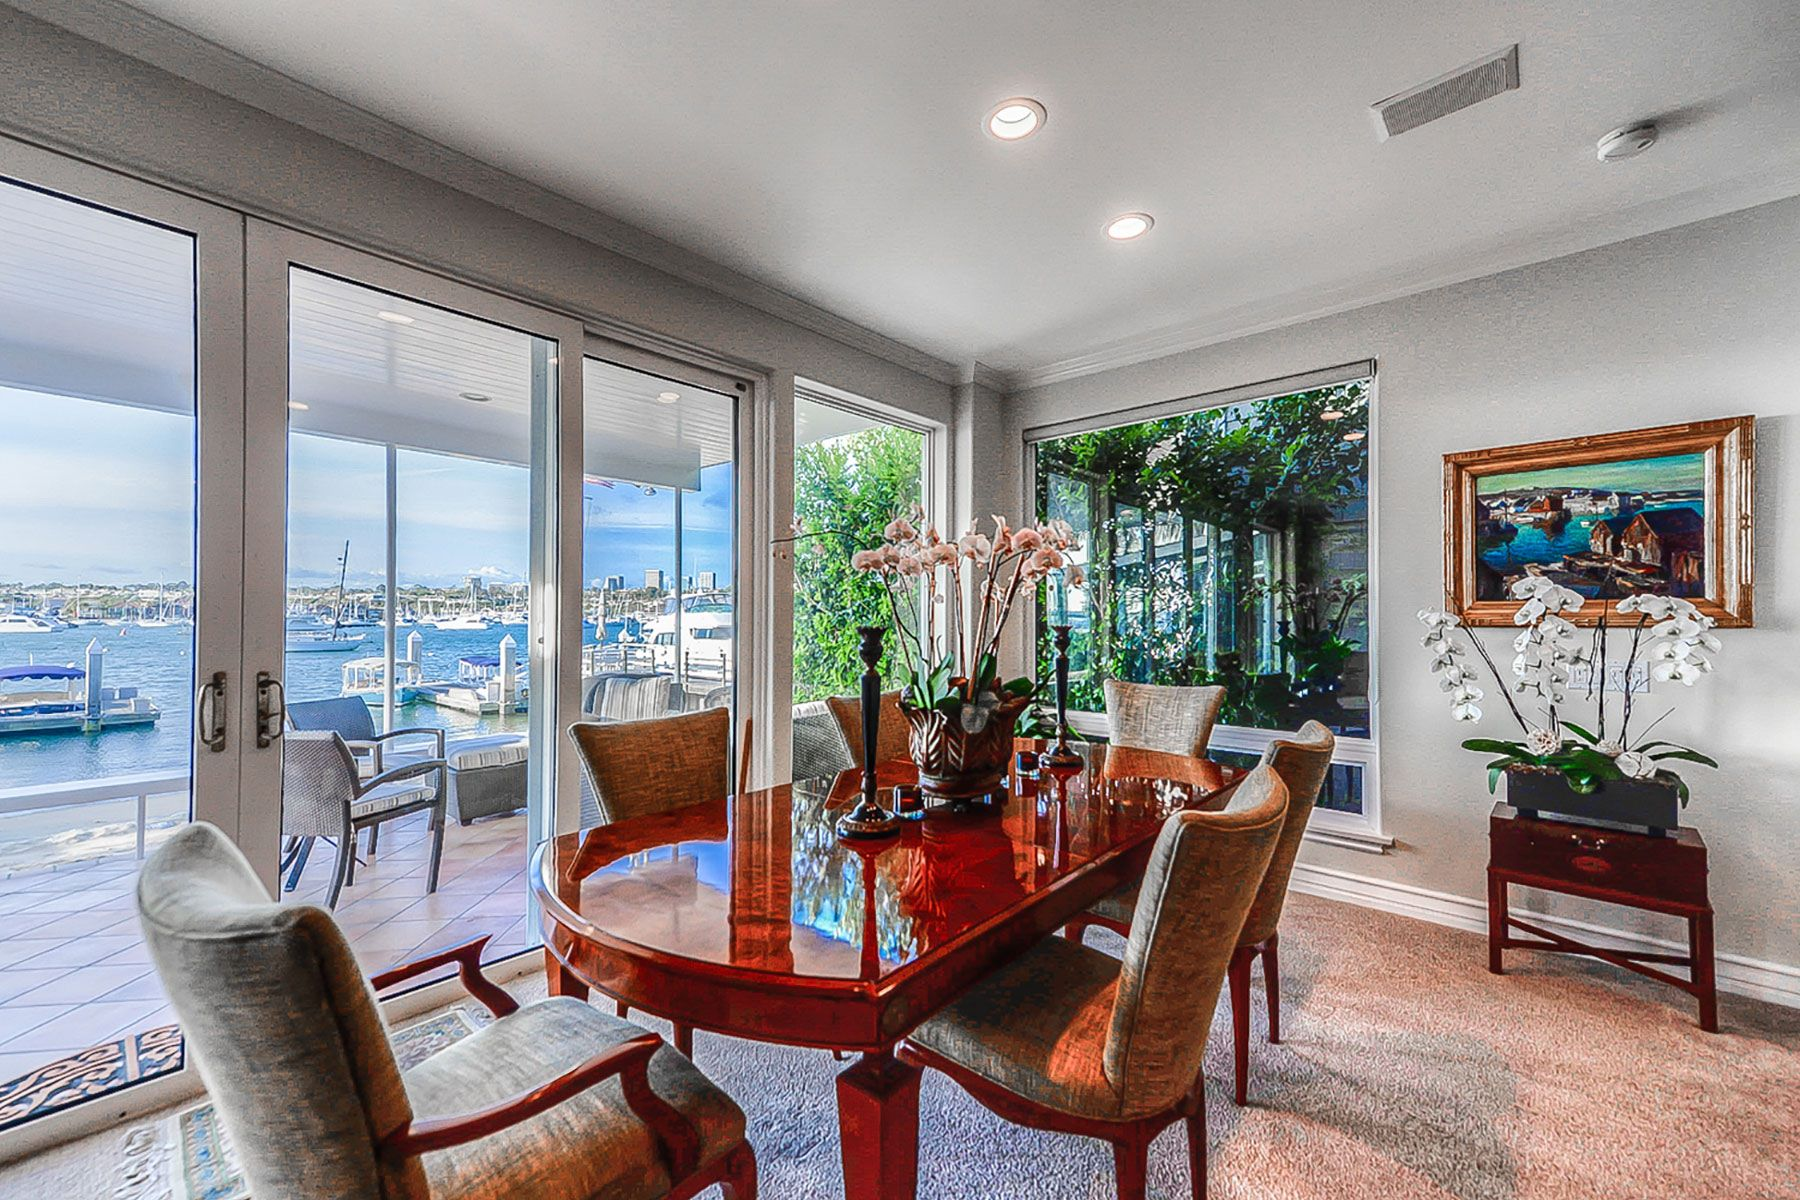 Single Family Home for Sale at 1805 E. Bay Avenue Newport Beach, California, 92661 United States